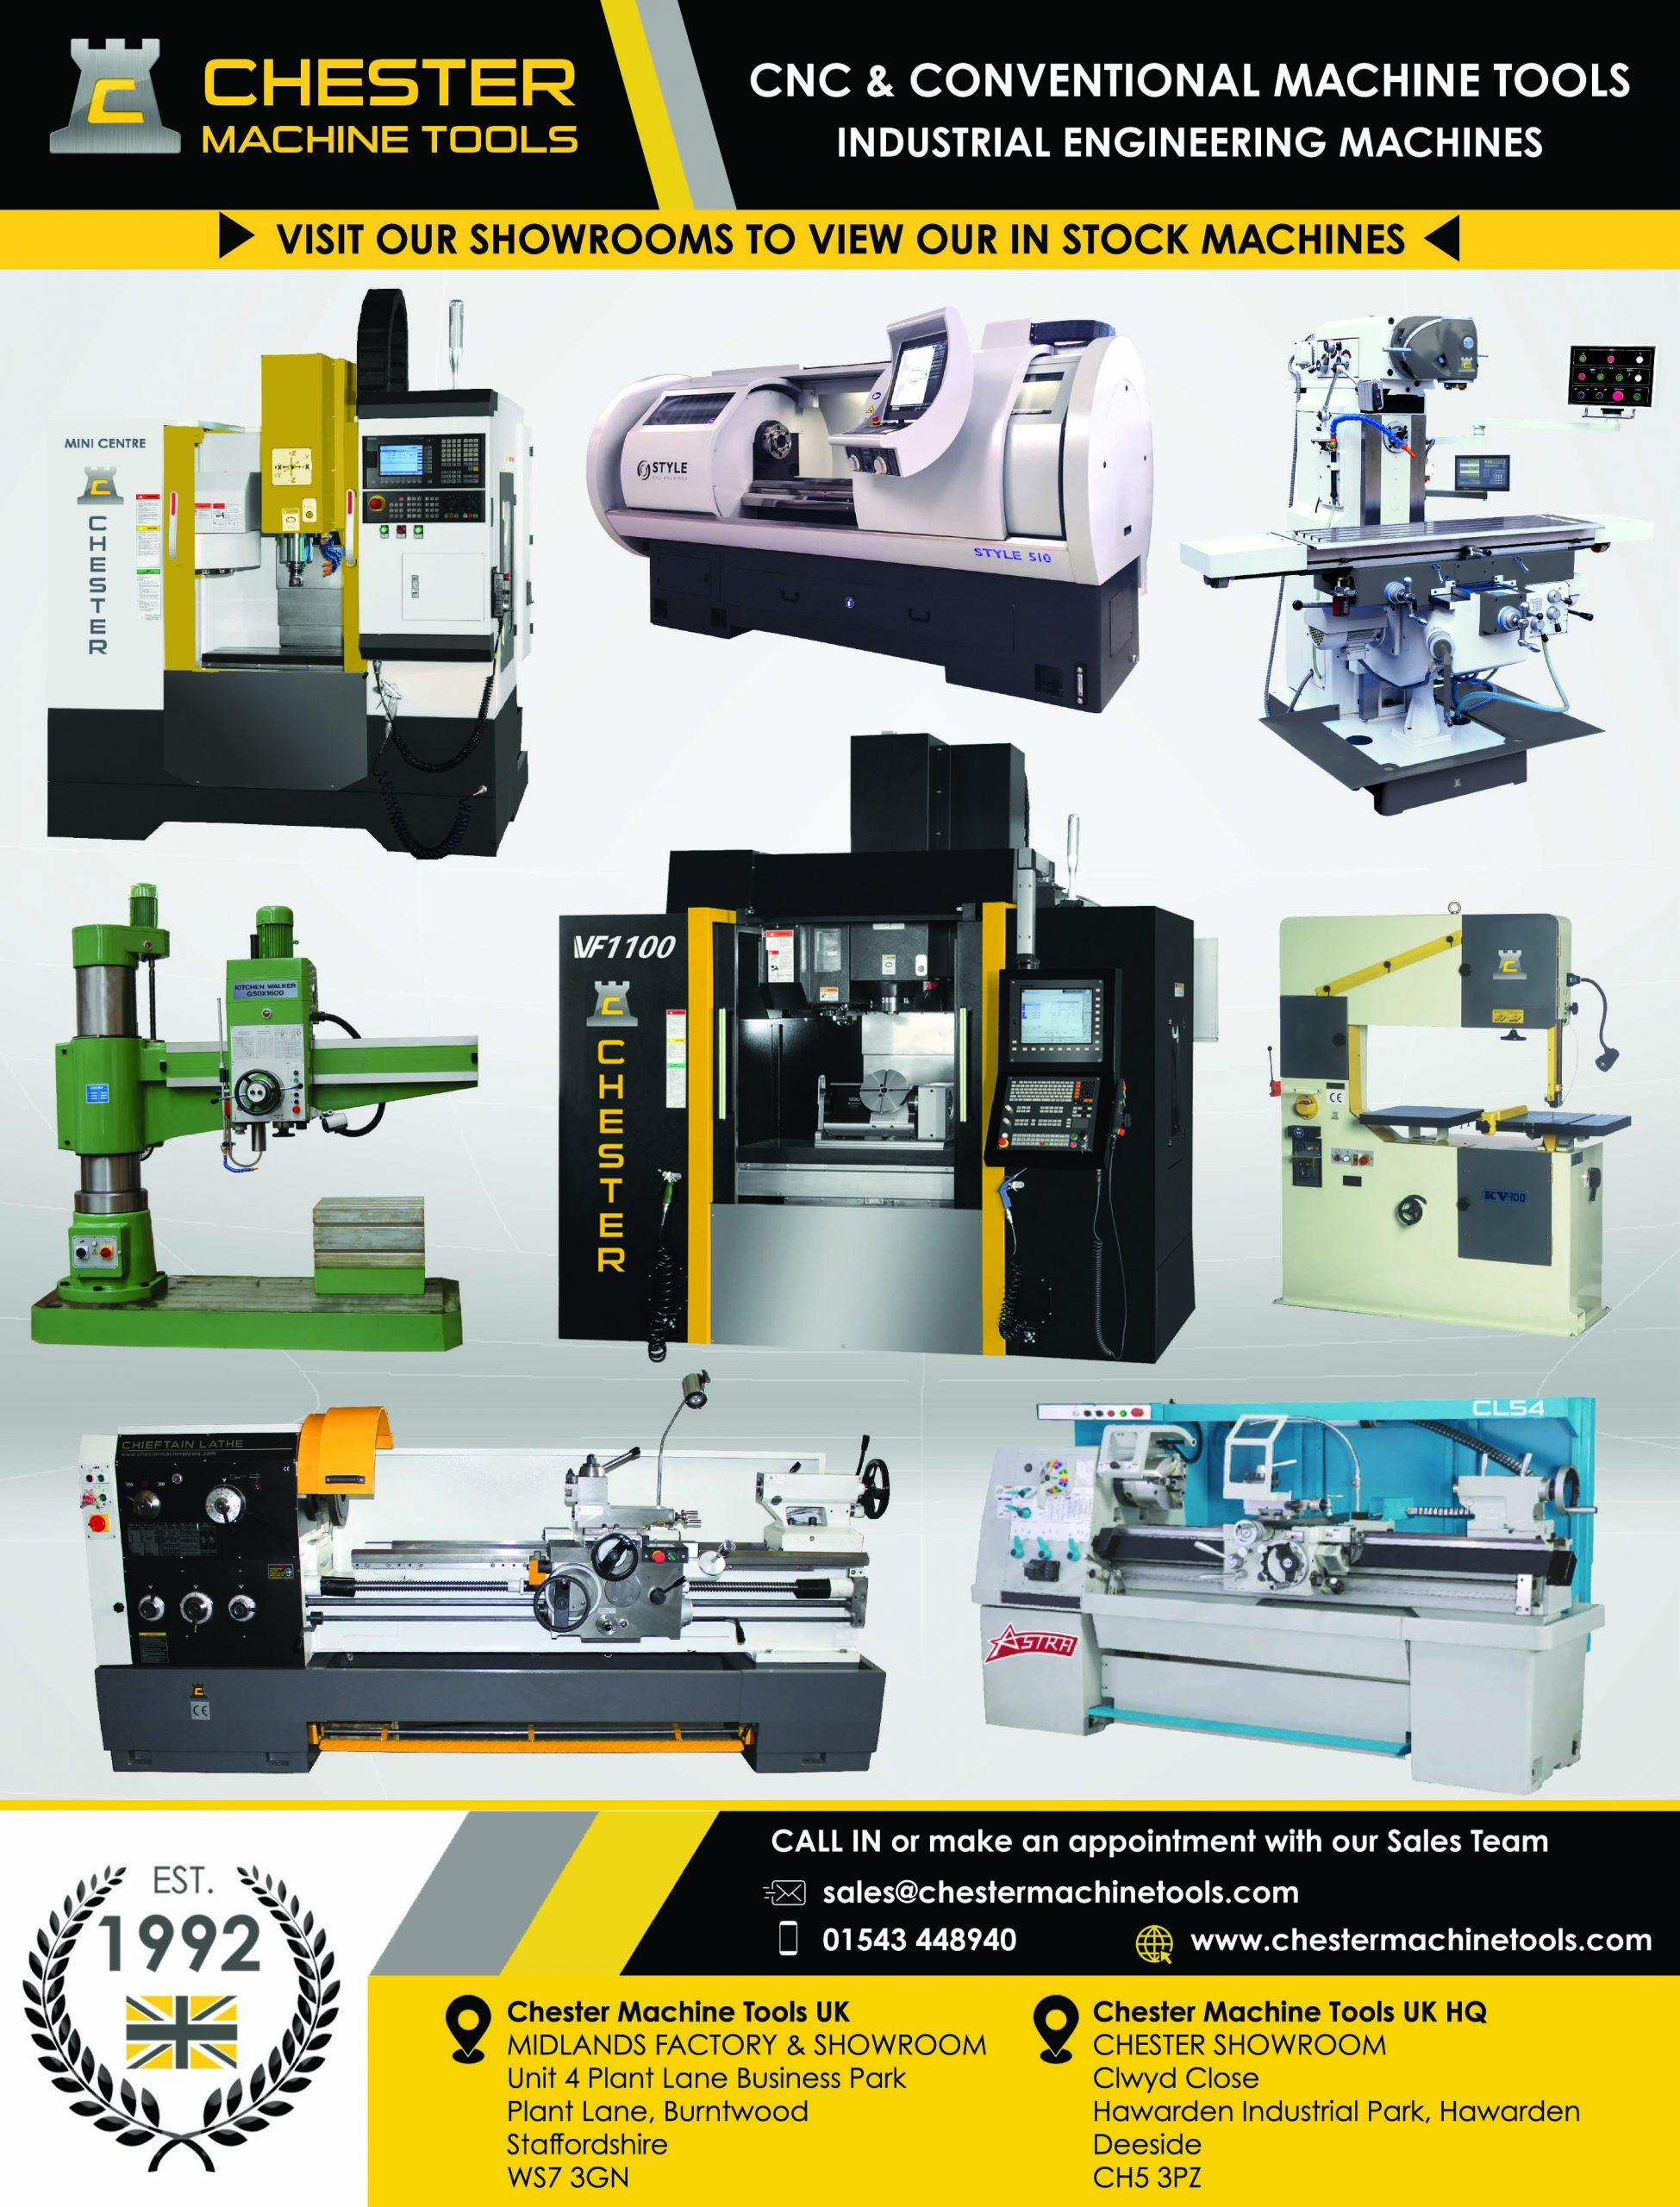 Our UK Machine Tool Showrooms Are Open